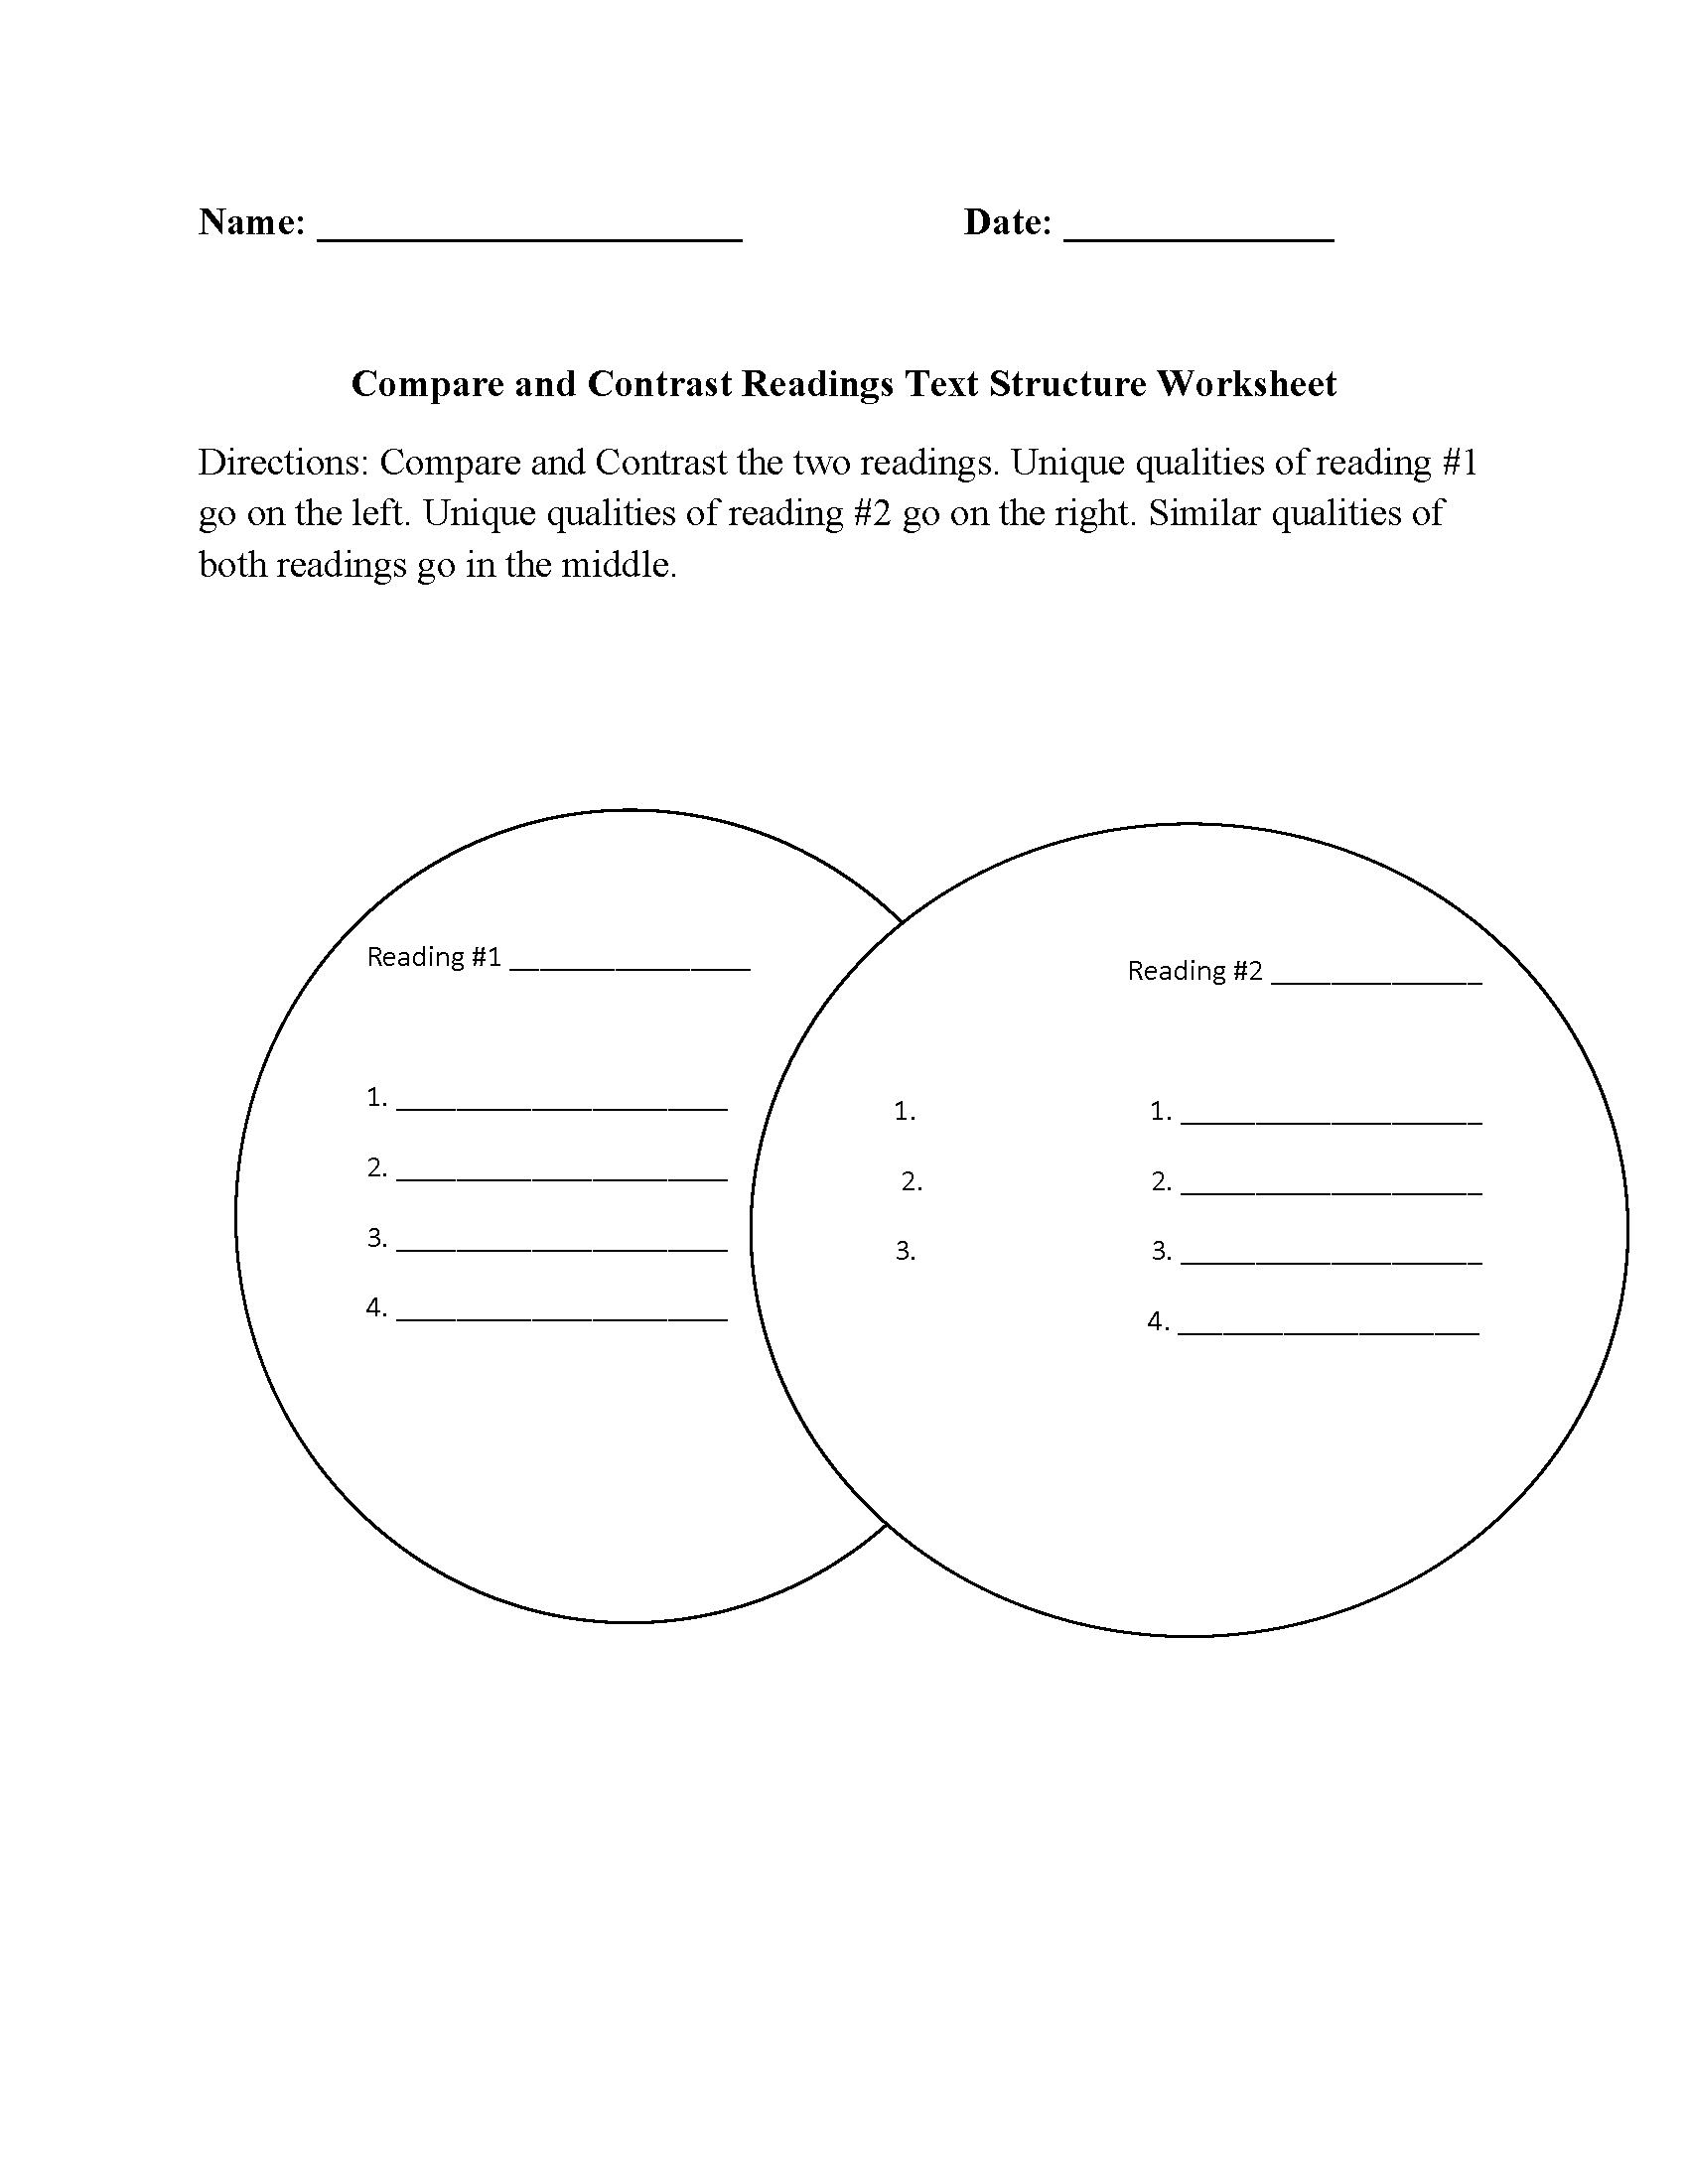 Worksheets Compare And Contrast Worksheets 4th Grade englishlinx com text structure worksheets compare and contrast readings worksheets